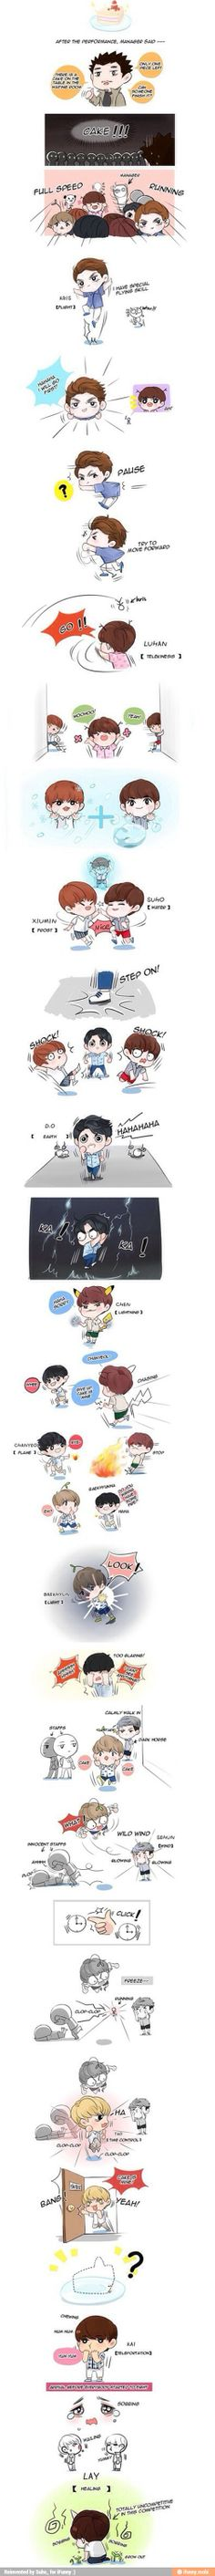 exo cute fanart omg i thought tao  would win but forgot about kai's teleporting XD